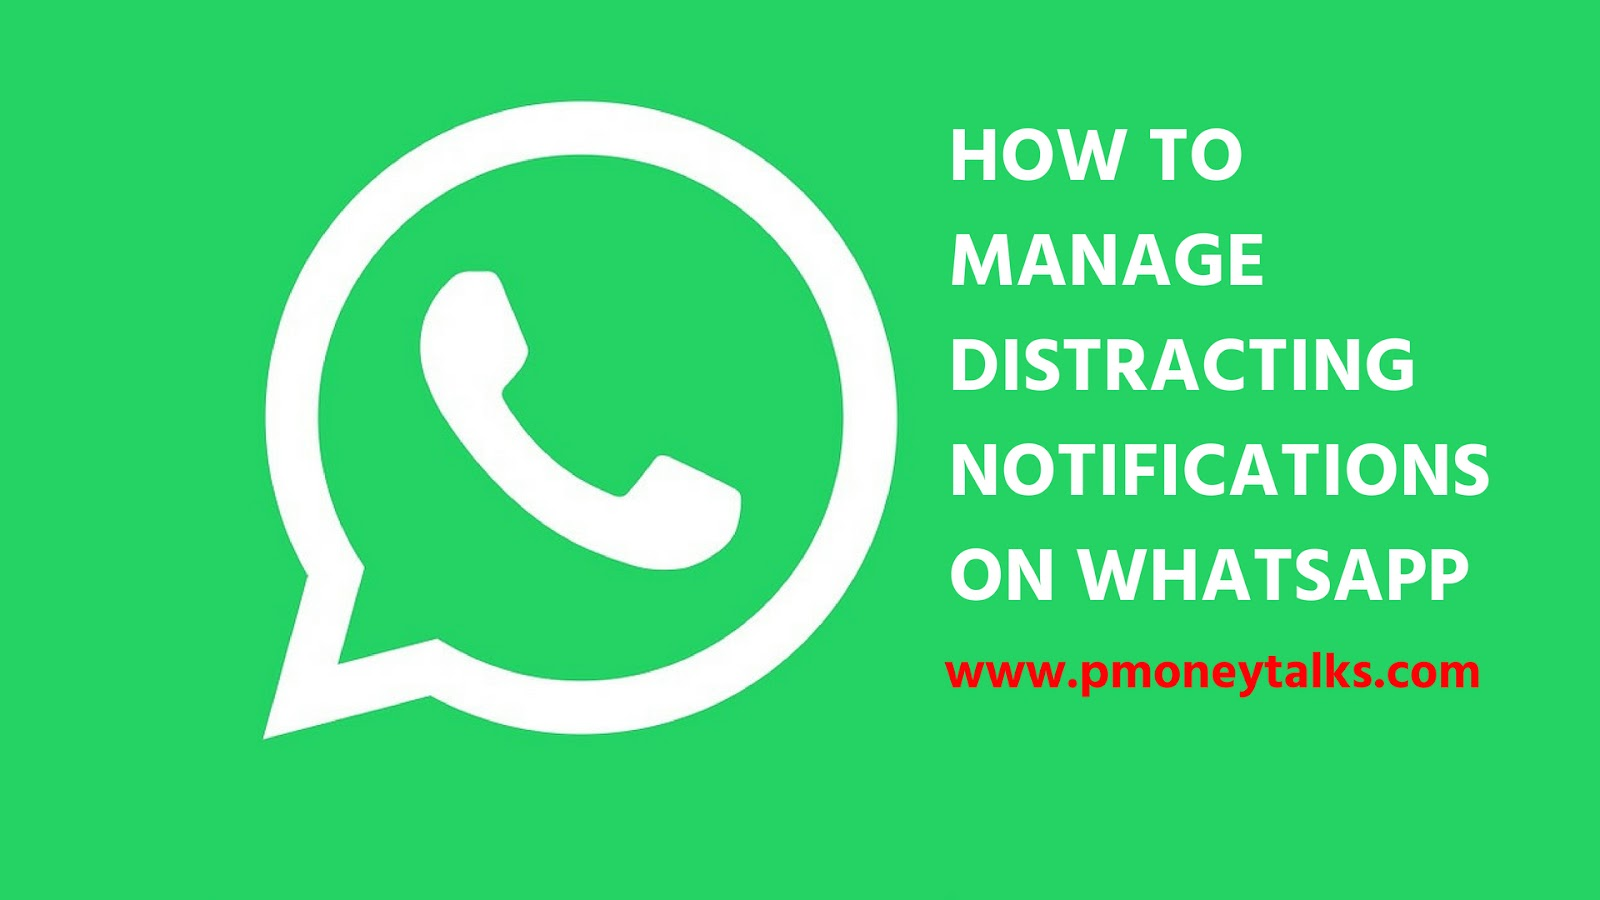 How To Manage Distracting Notifications On WhatsApp